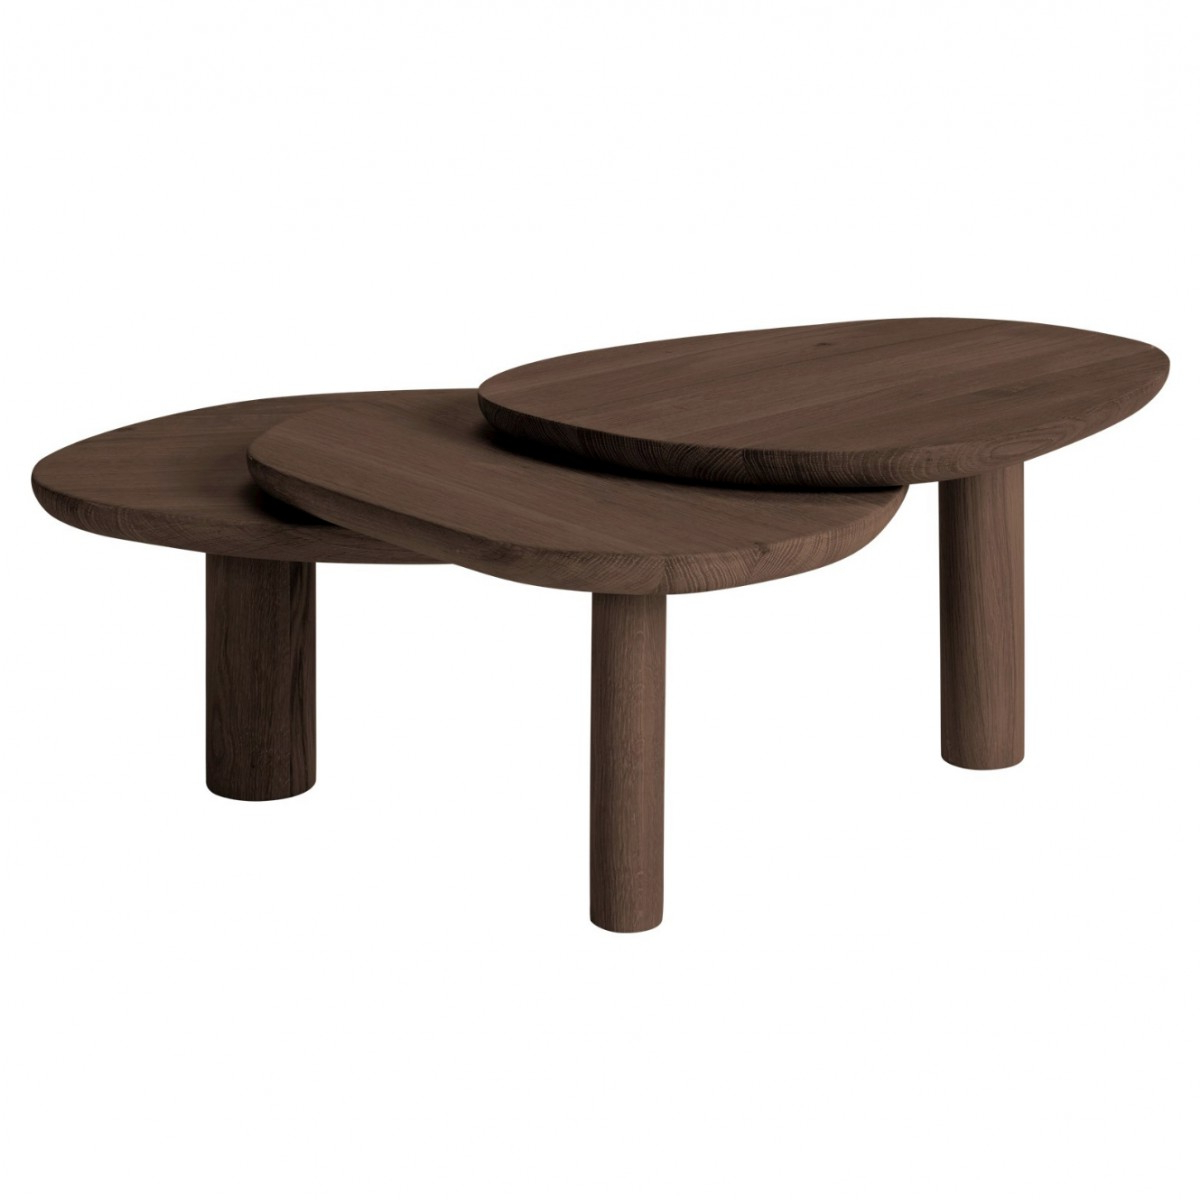 2019 Smoked Oak Coffee Tables Regarding Latch Coffee Table – Bolia At Colonel Shop (Gallery 4 of 20)